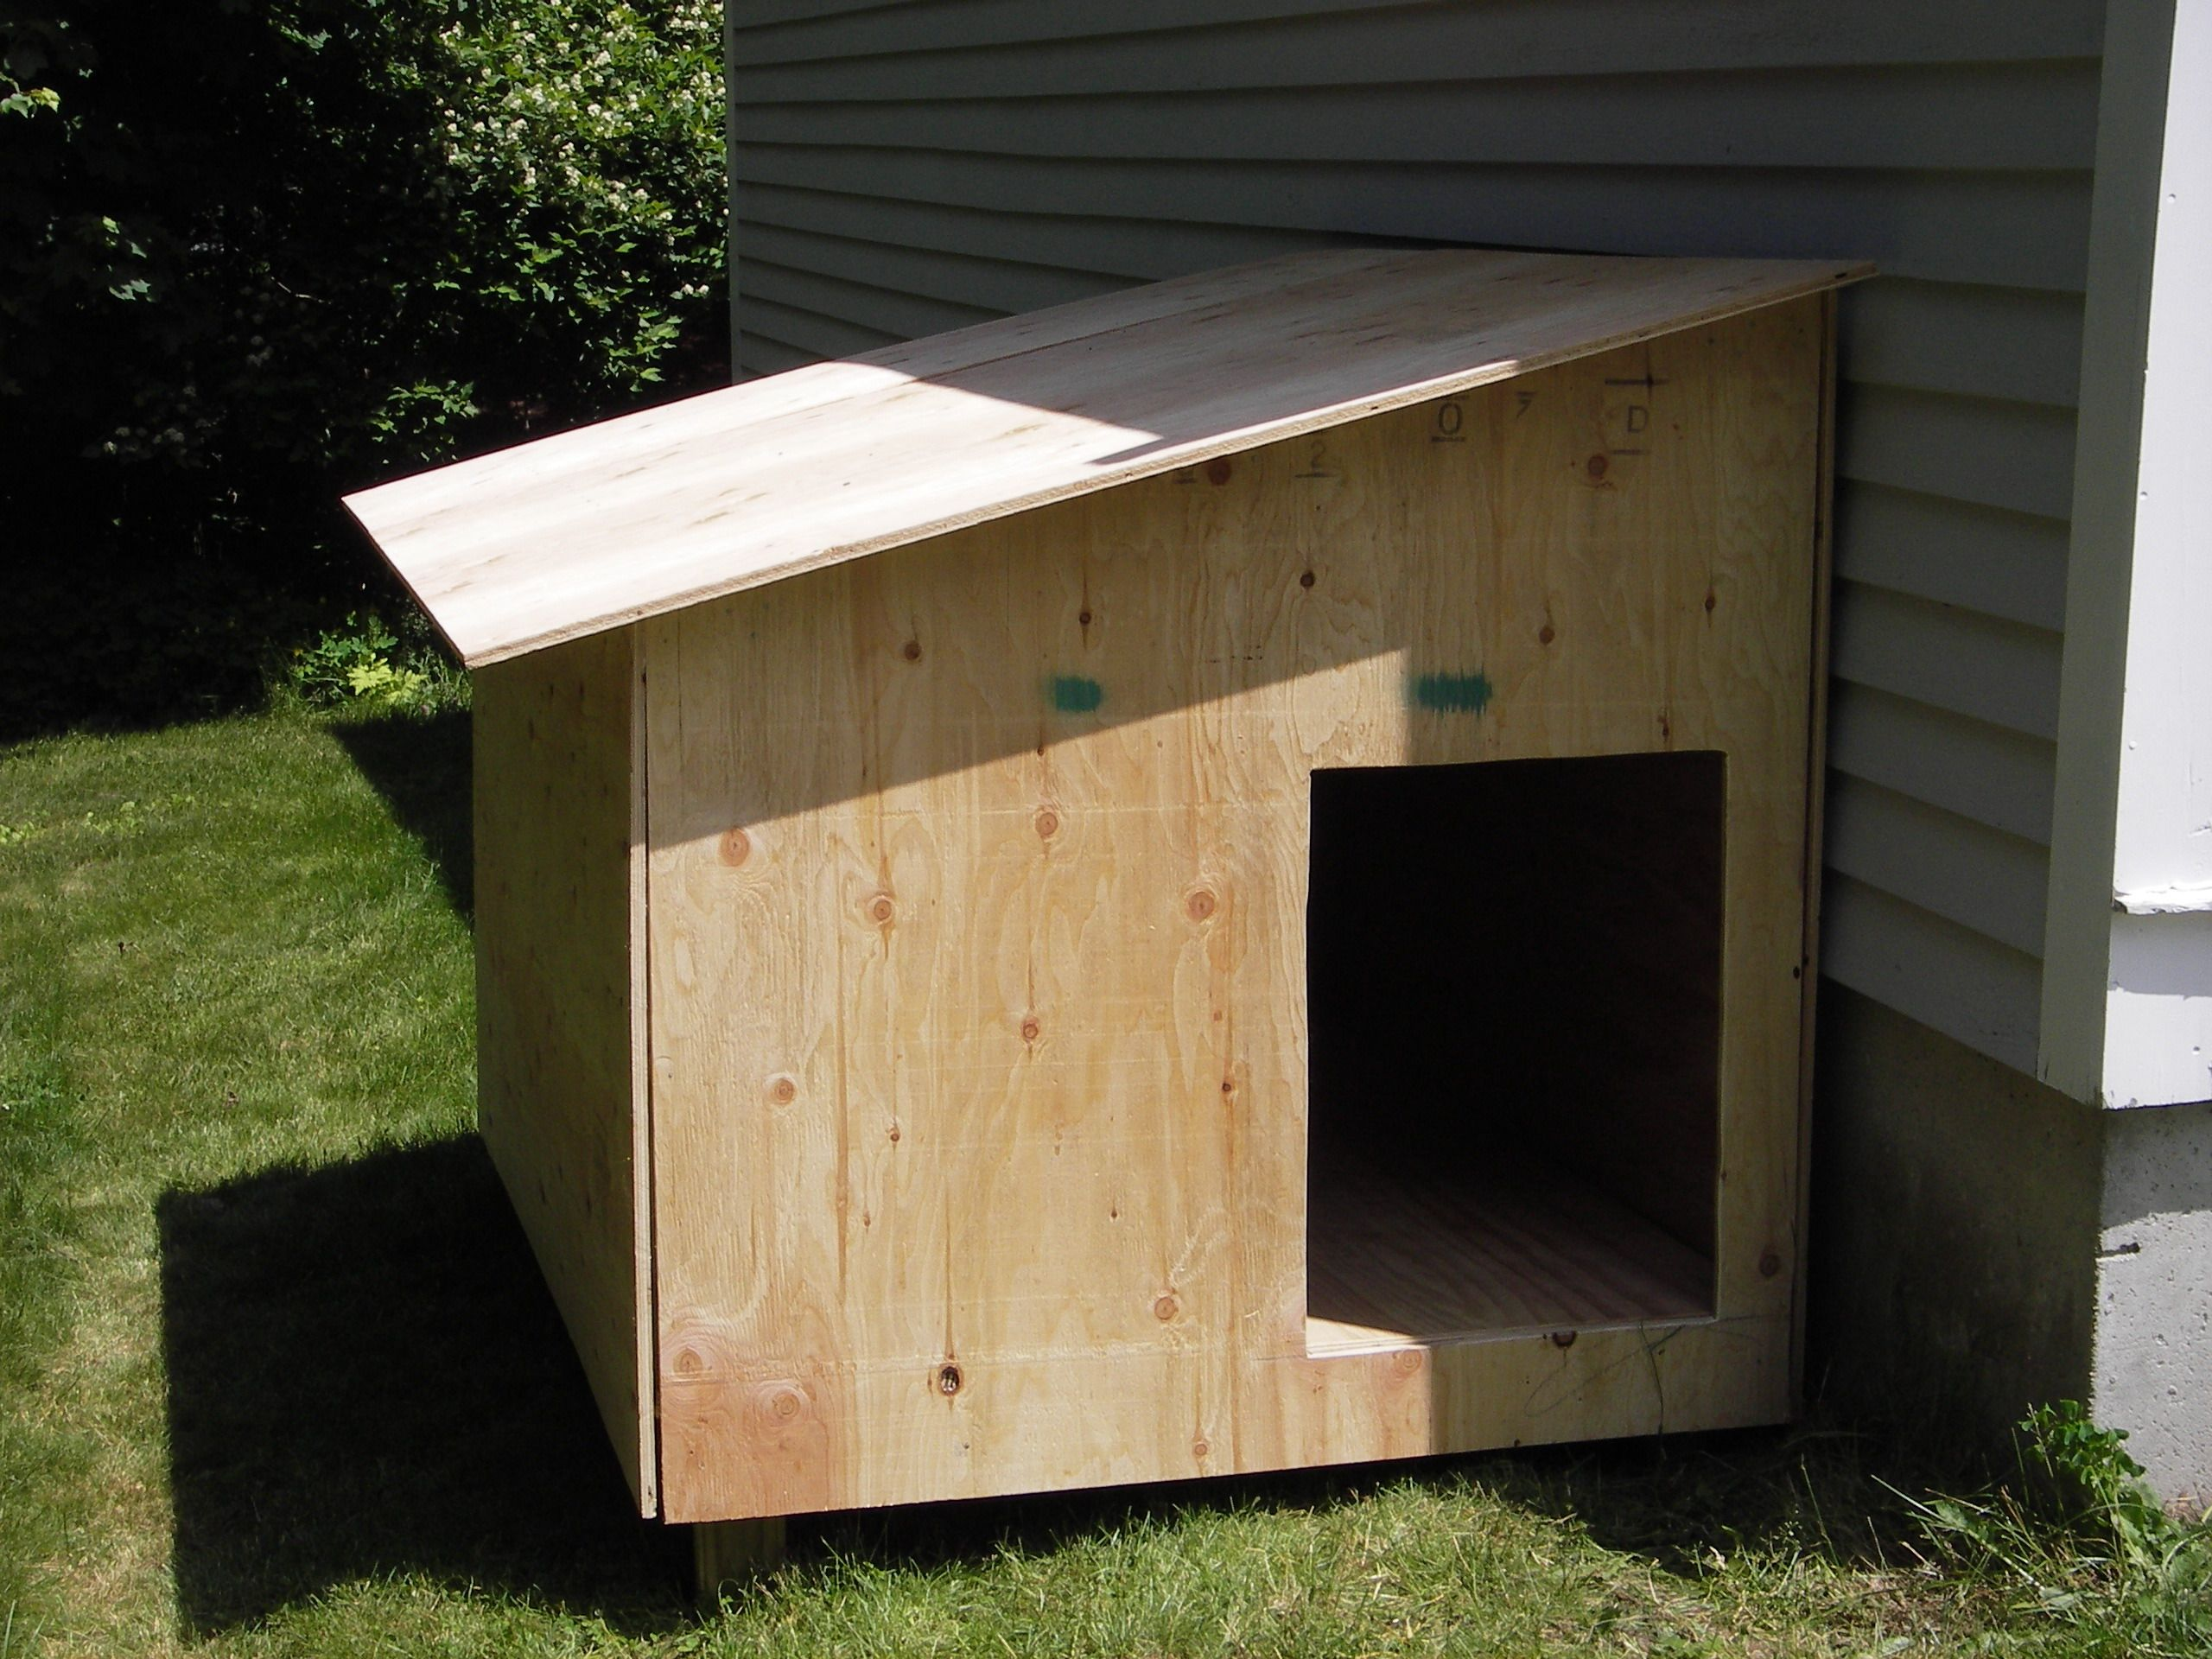 6 Best Dog Houses For Outdoors And Indoors House plans Pets and